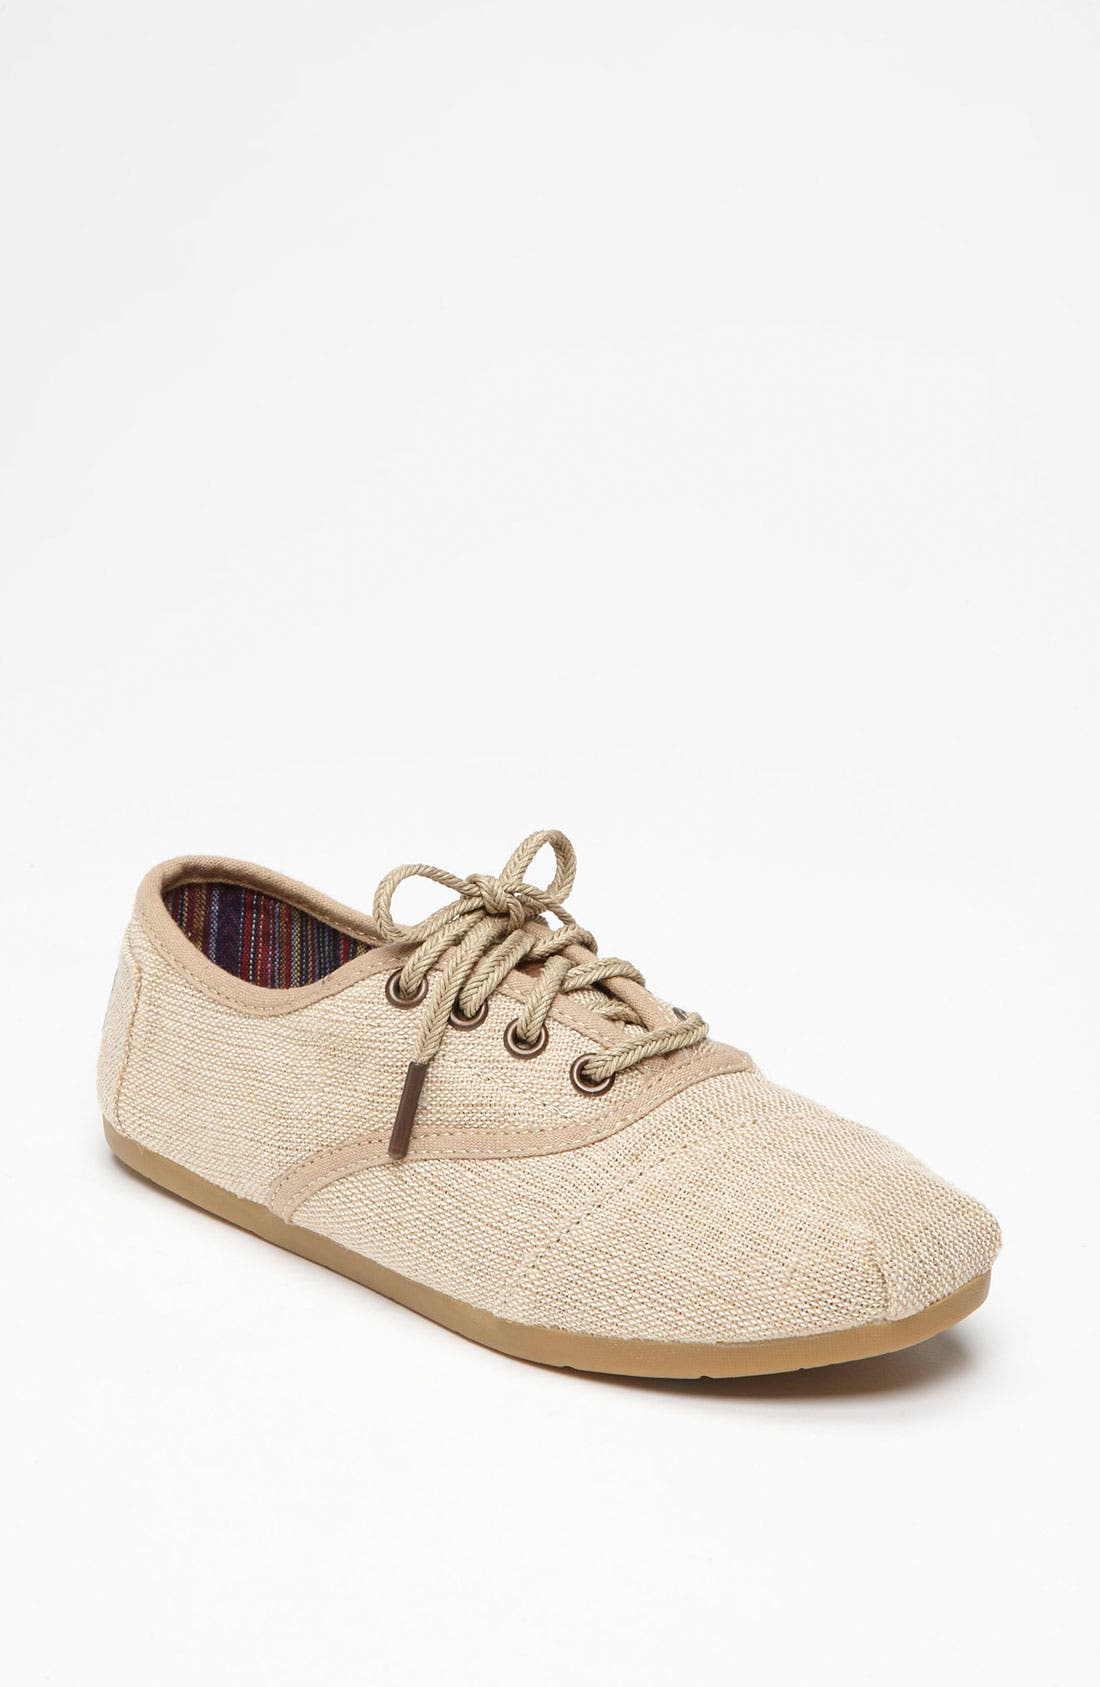 Alternate Image 1 Selected - TOMS 'Cordones - Paxton' Sneaker (Women)